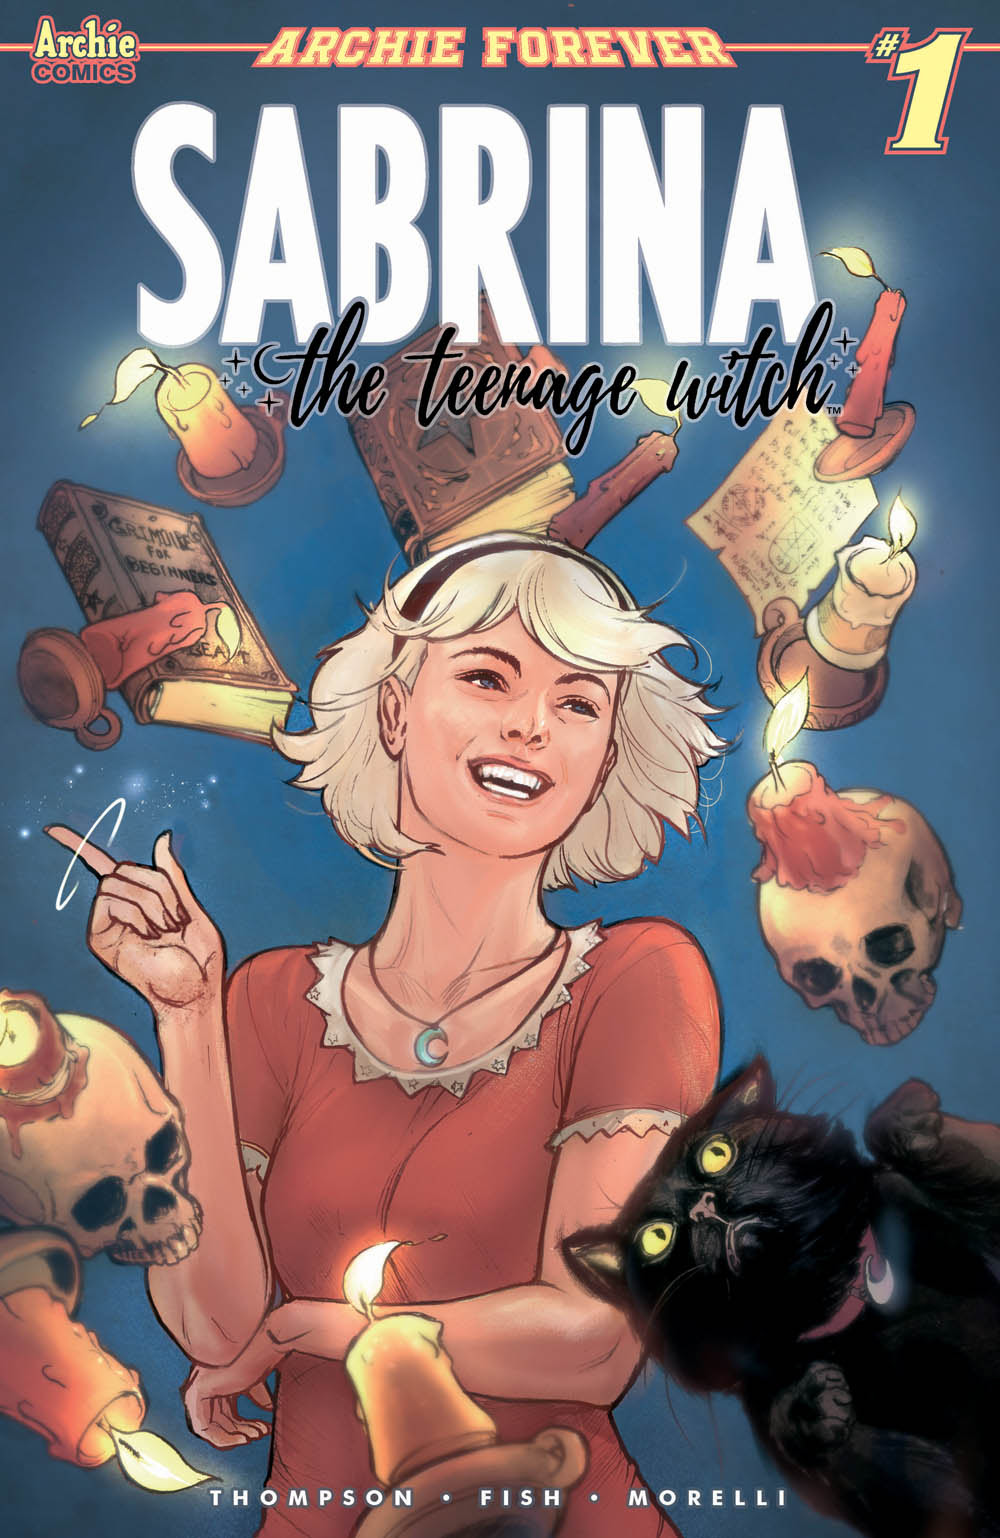 SABRINA THE TEENAGE WITCH #1: CVR D Ibanez